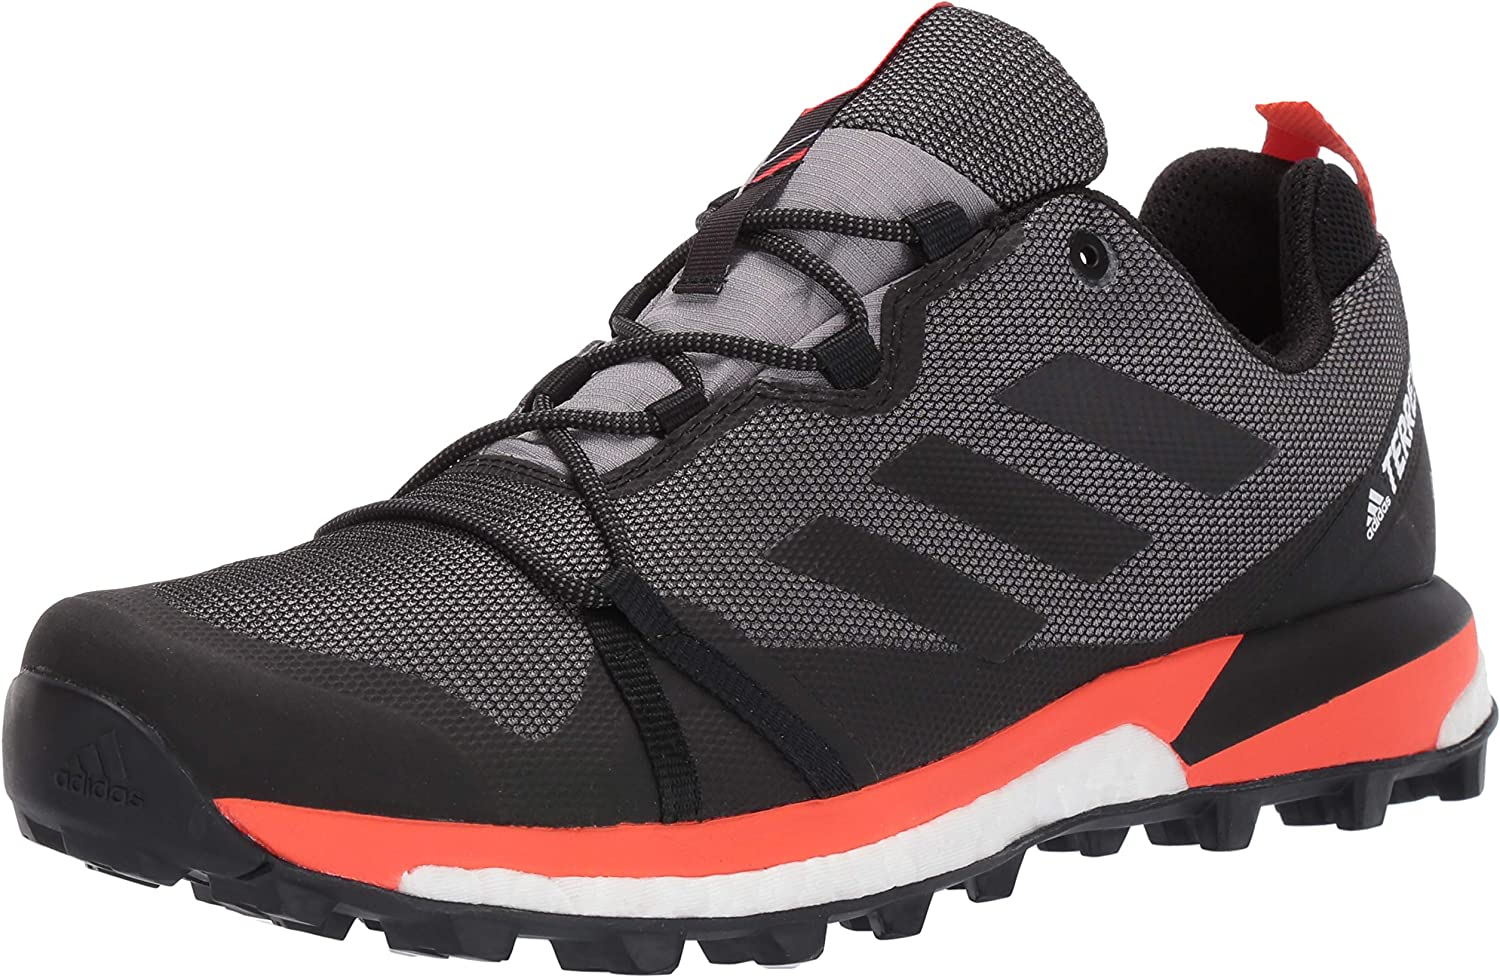 adidas outdoor Men s Terrex Skychaser Lt GTX Walking Shoe